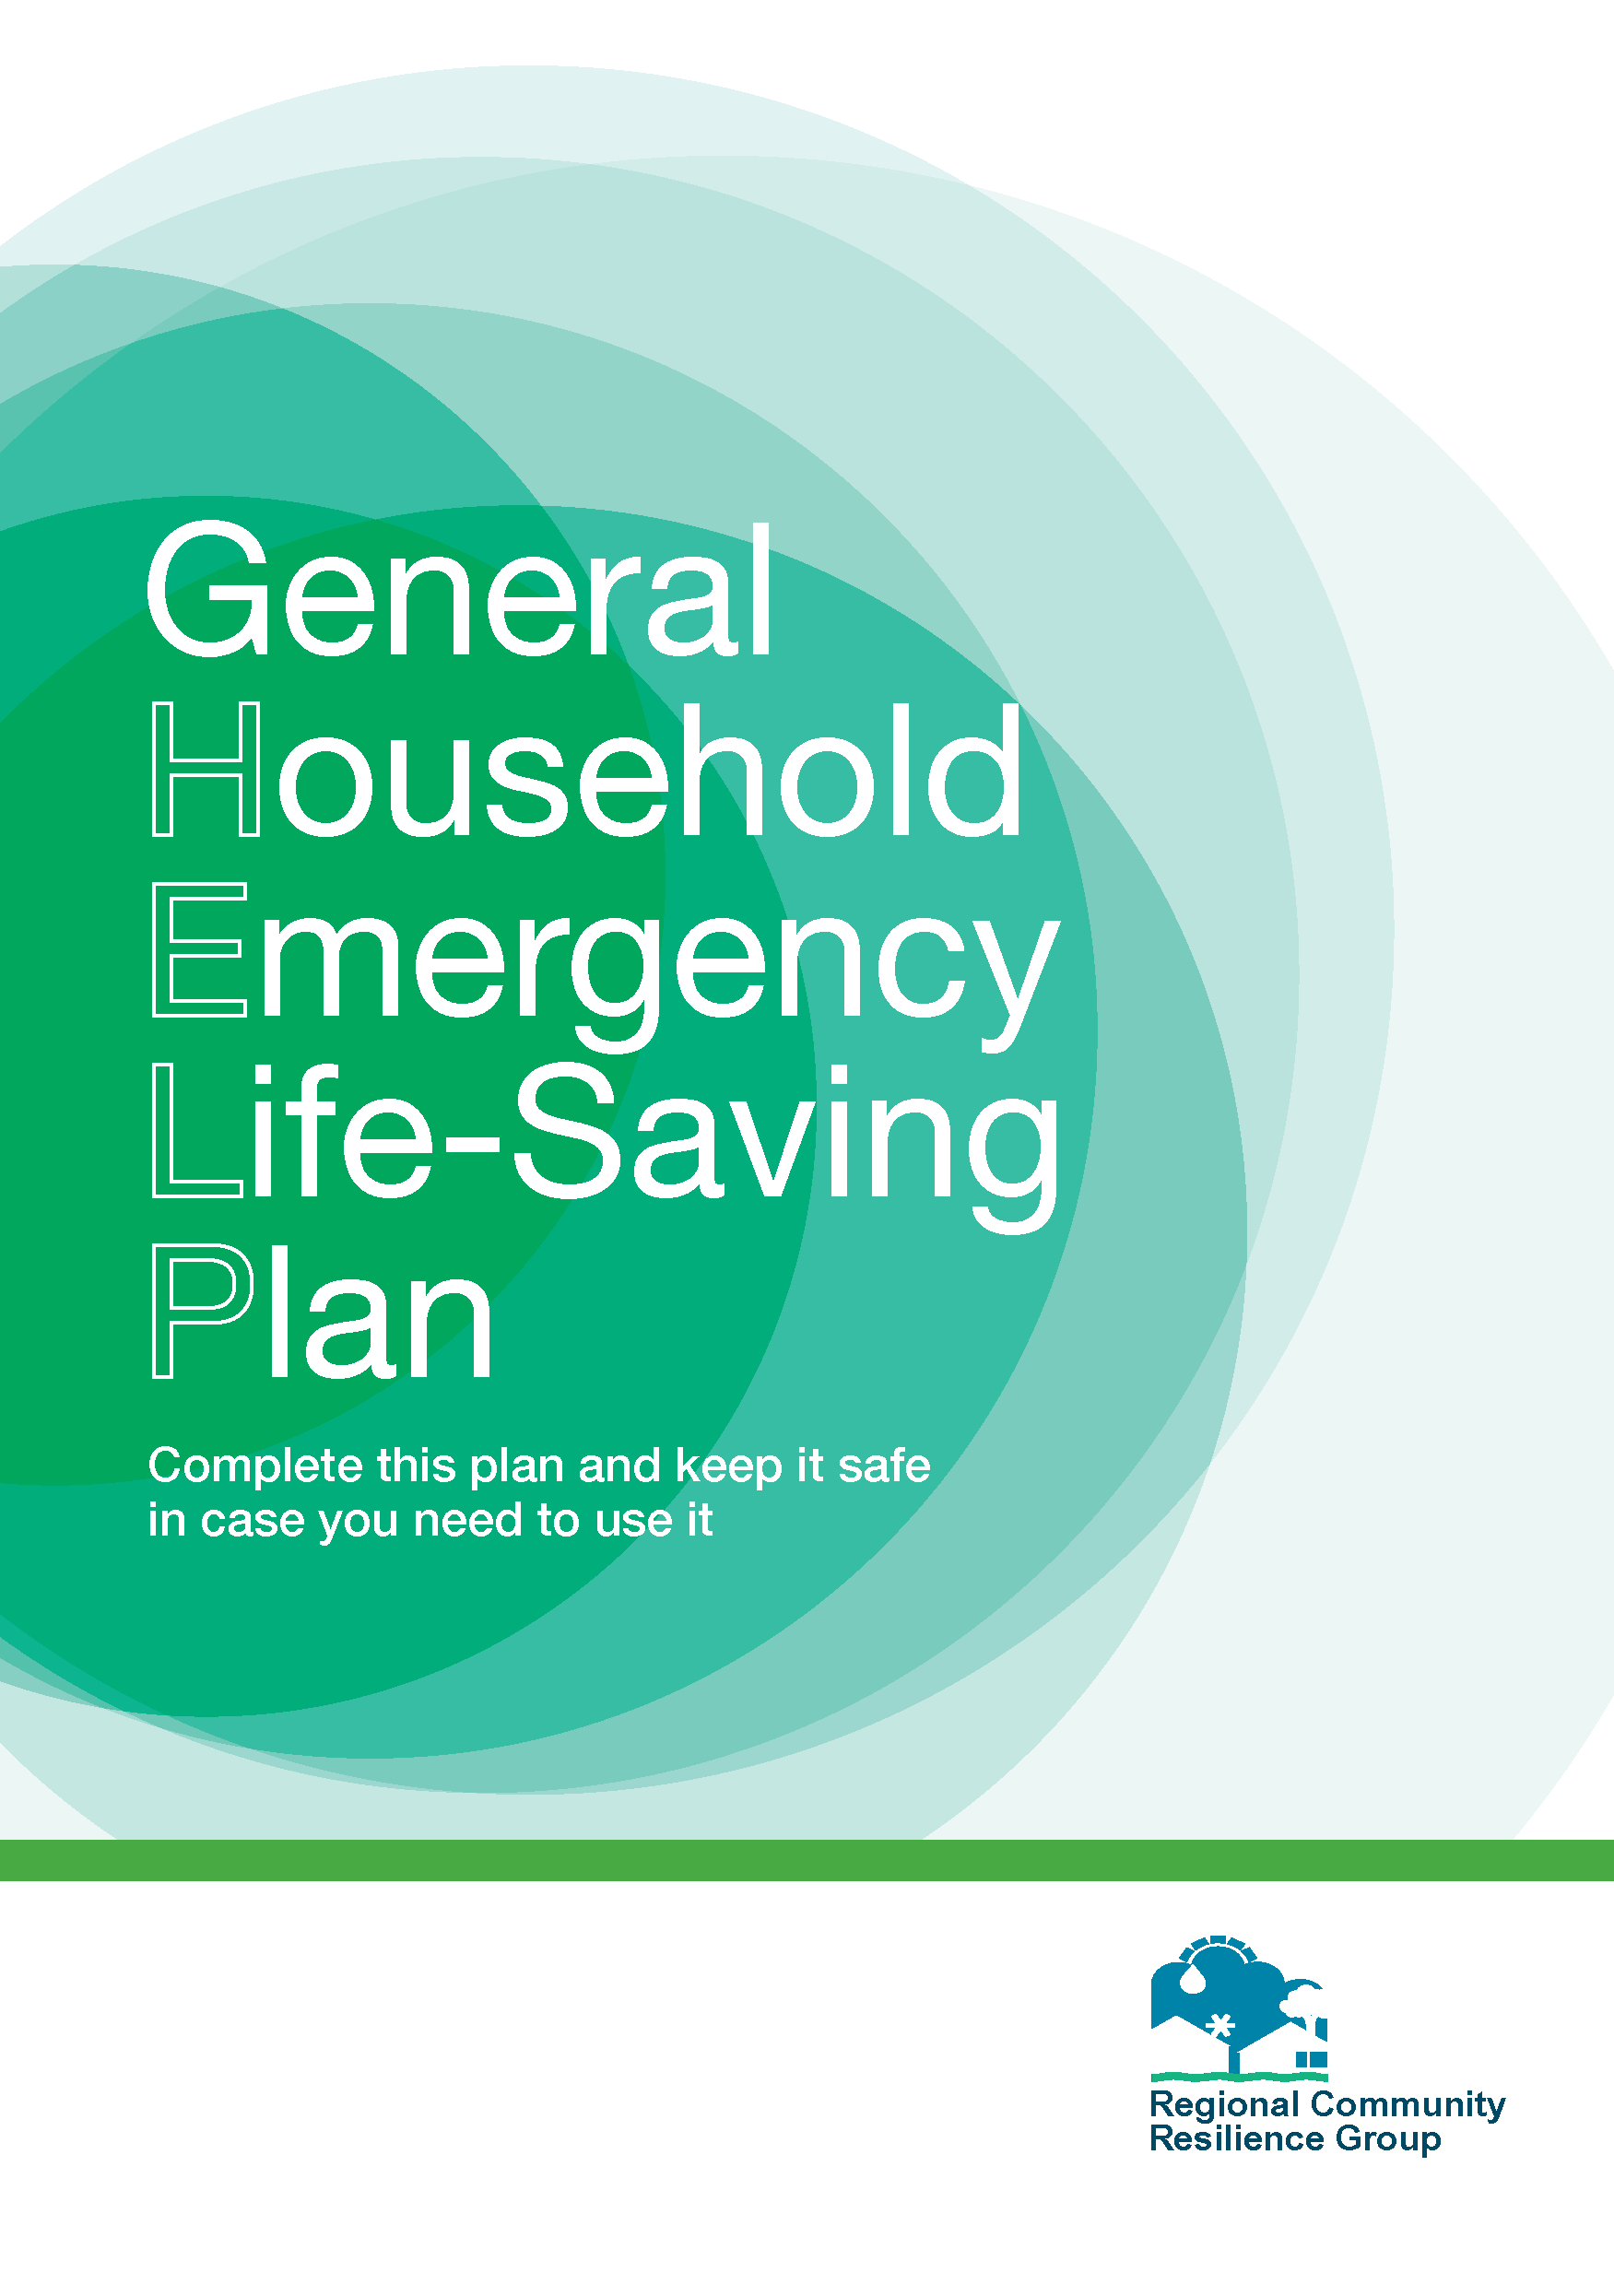 General Household Emergency Life-Saving Plan